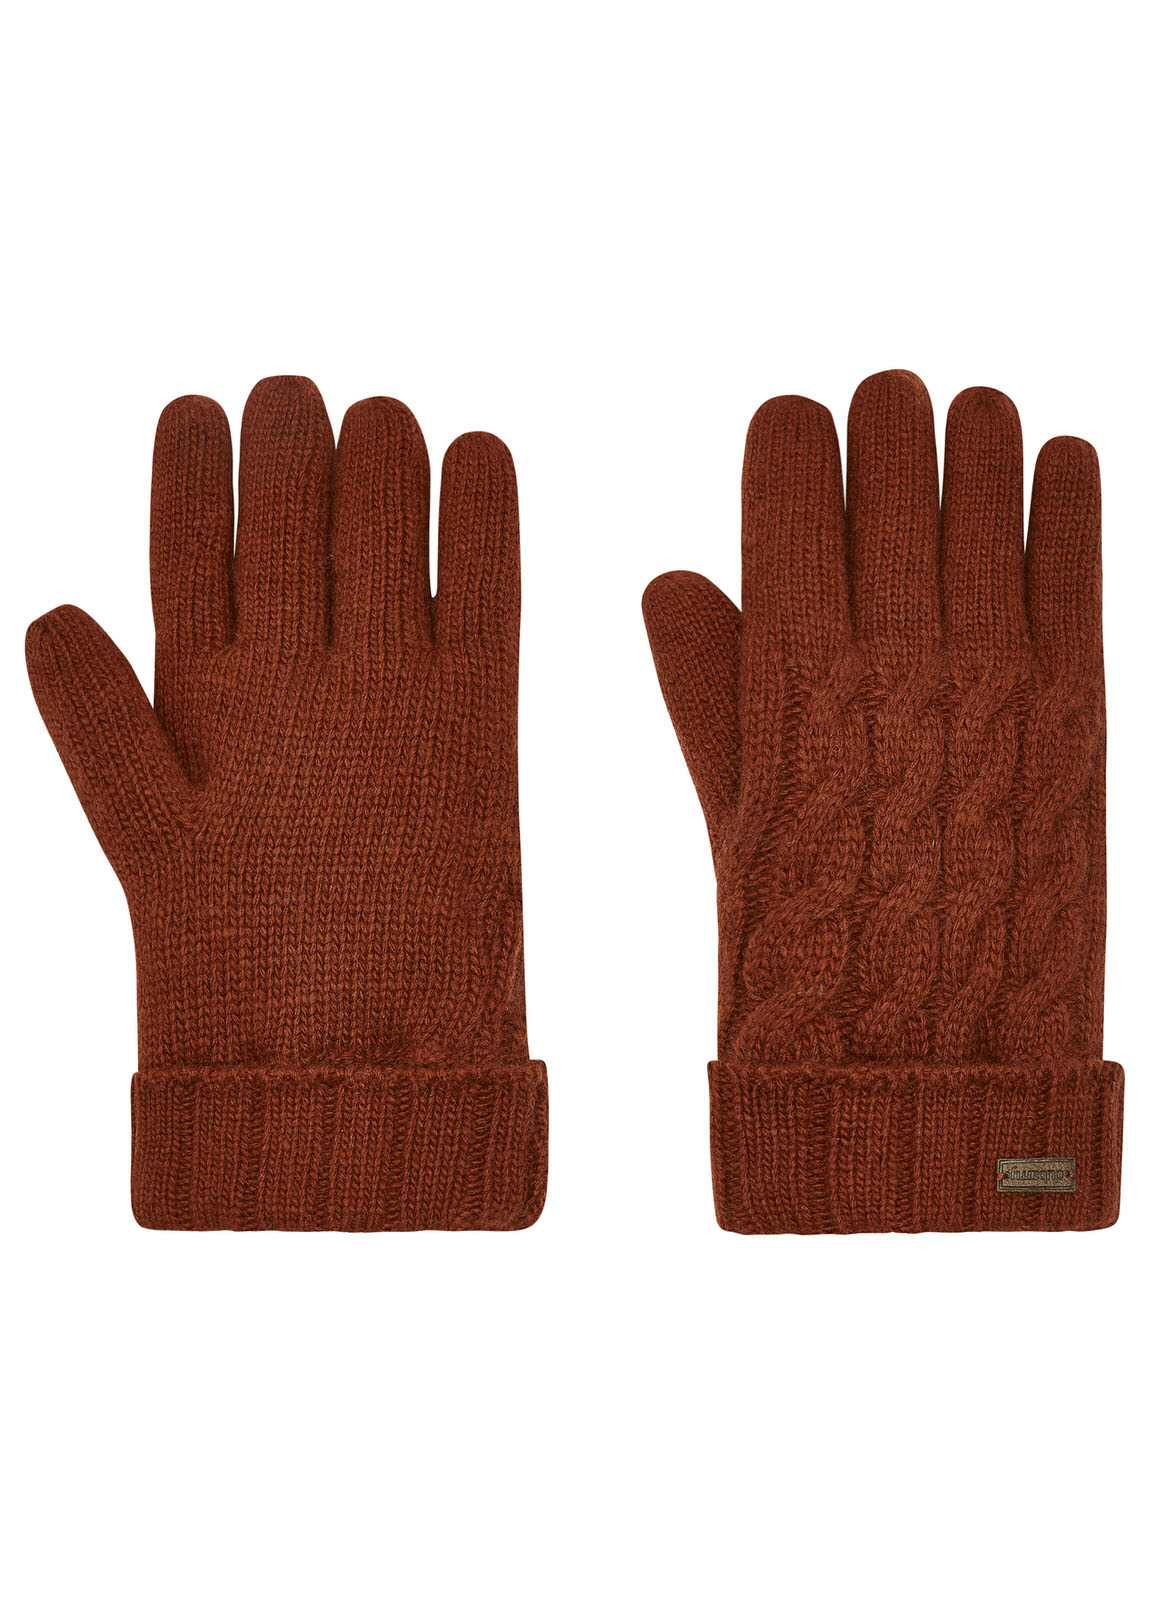 Buckley_Knitted_Gloves_Russet_Image_1